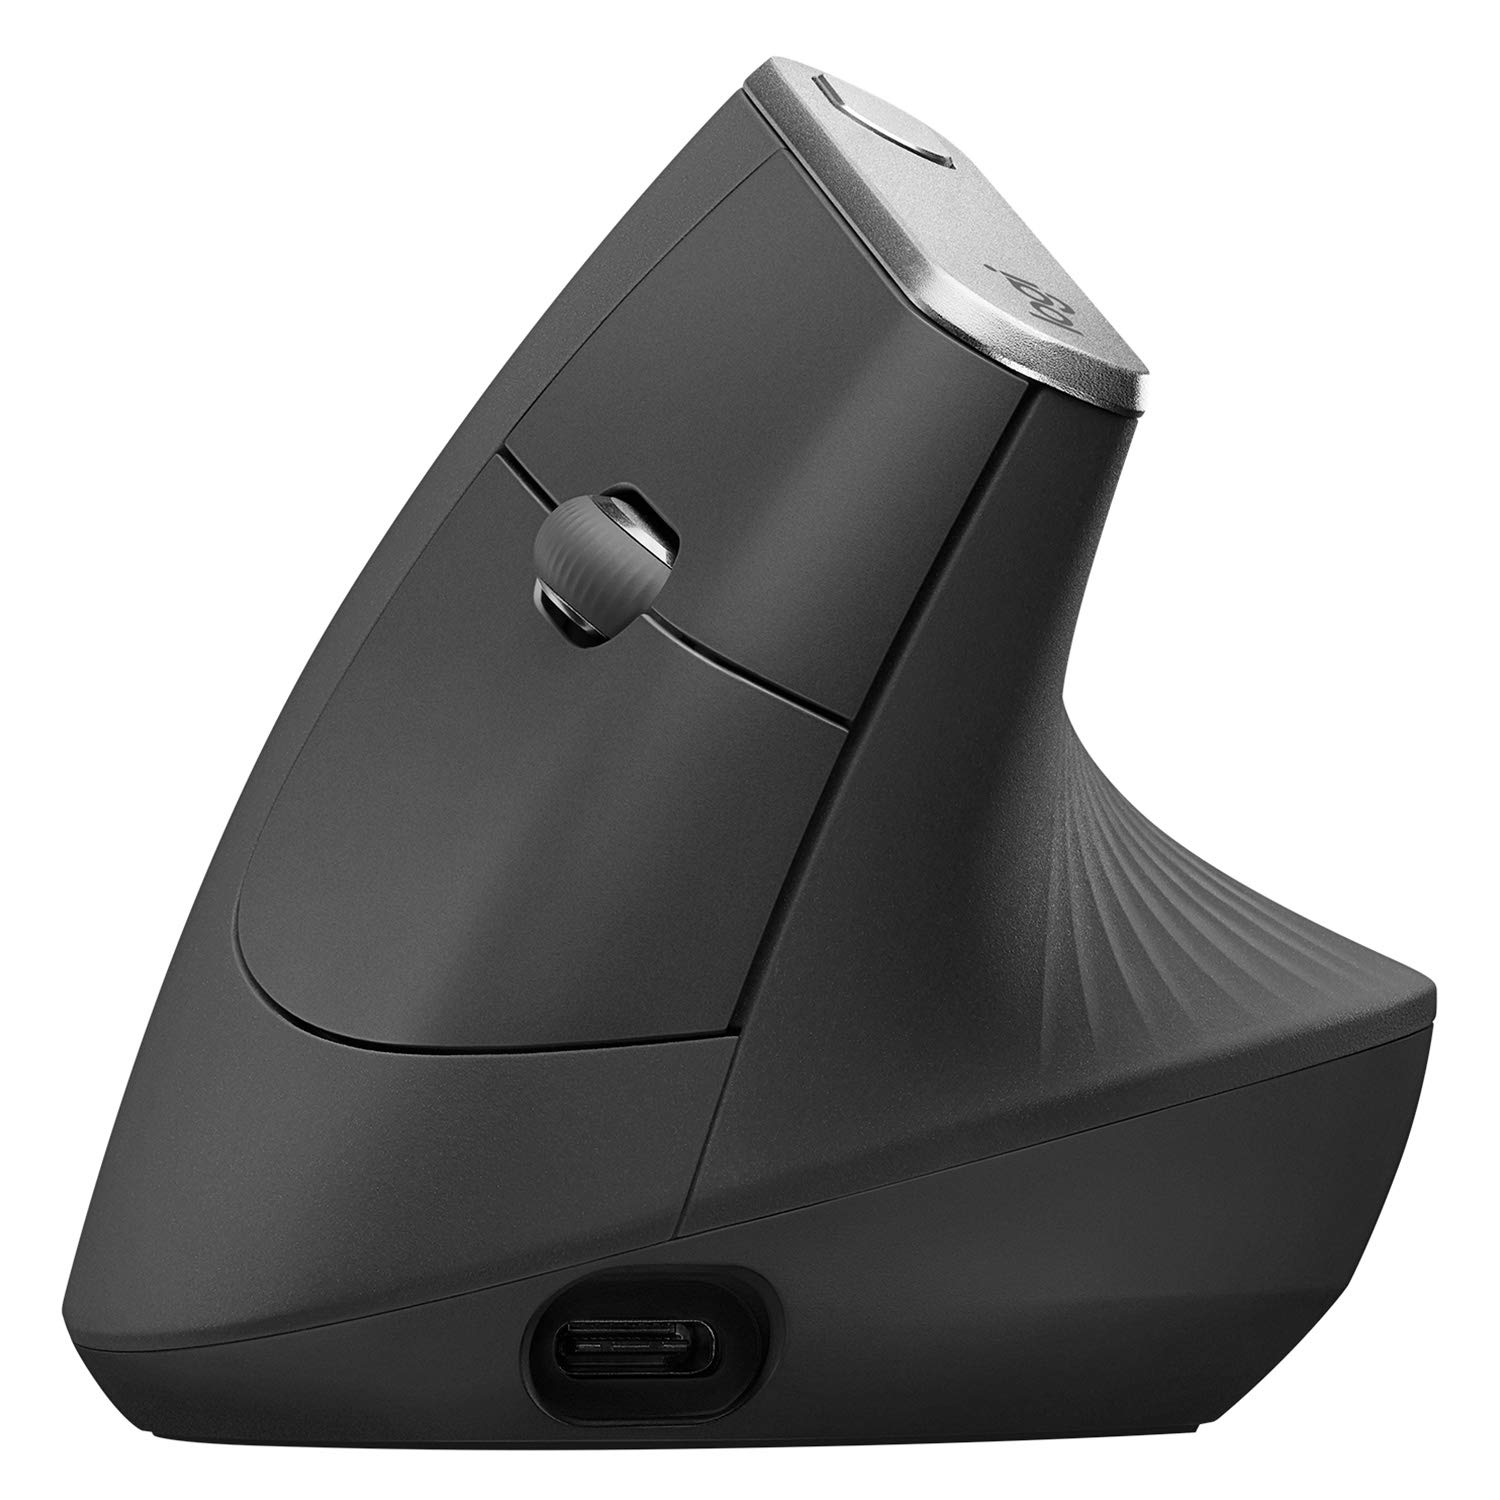 Logitech MX Vertical Wireless Mouse – Advanced Ergonomic Design Reduces Muscle Strain